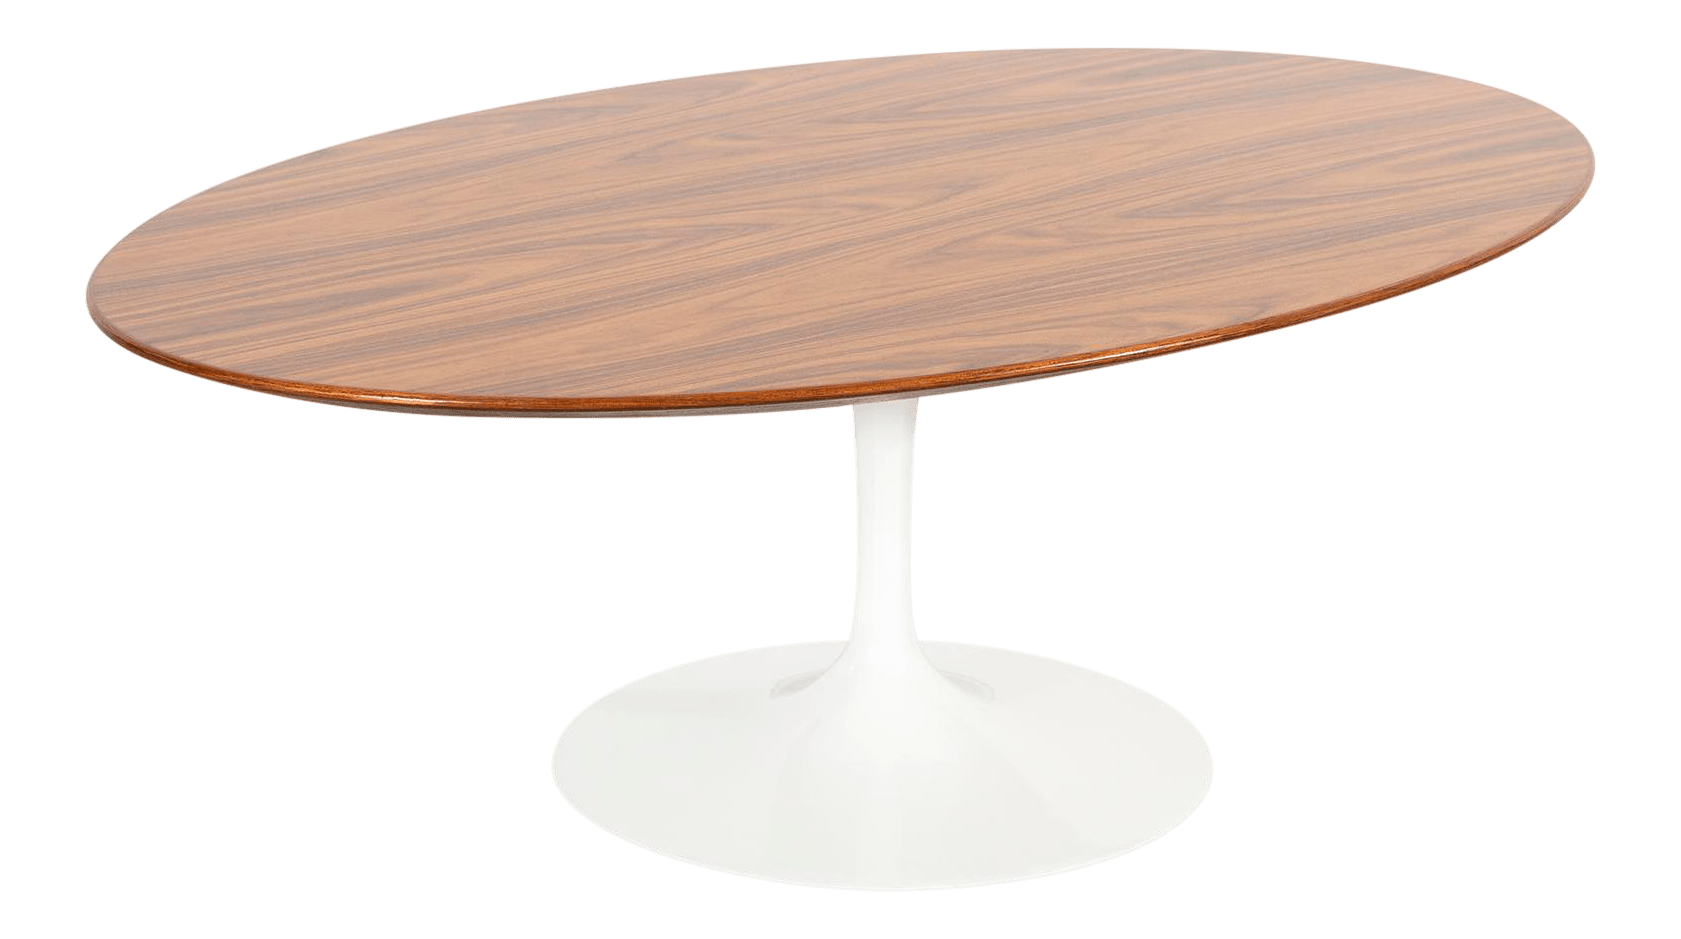 Saarinen Knoll Table Eero Saarinen For Knoll Rosewood Coffee Table 50th Anniversary Edition